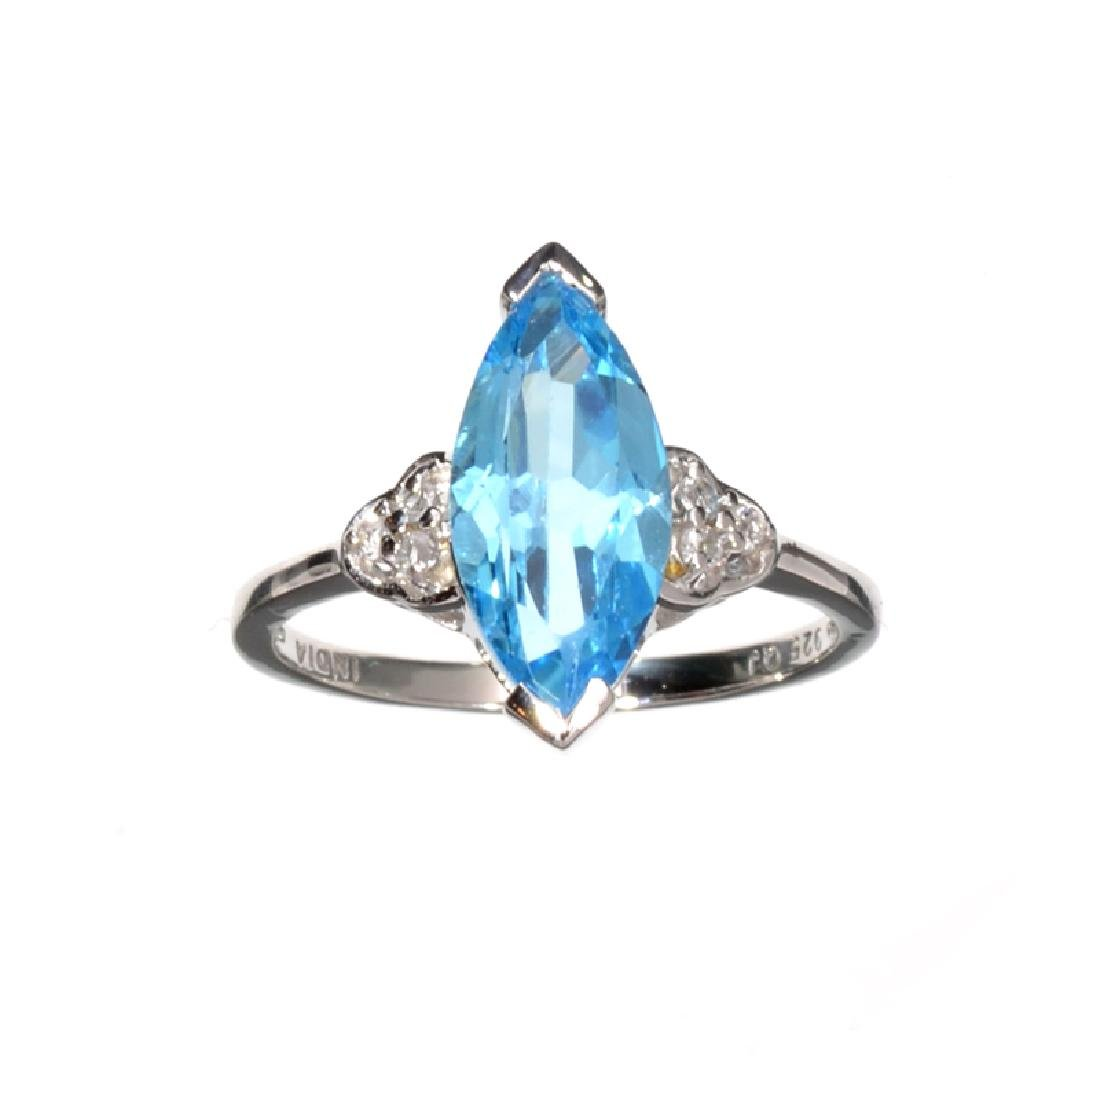 APP: 0.4k Fine Jewelry 3.63CT Blue Topaz And White